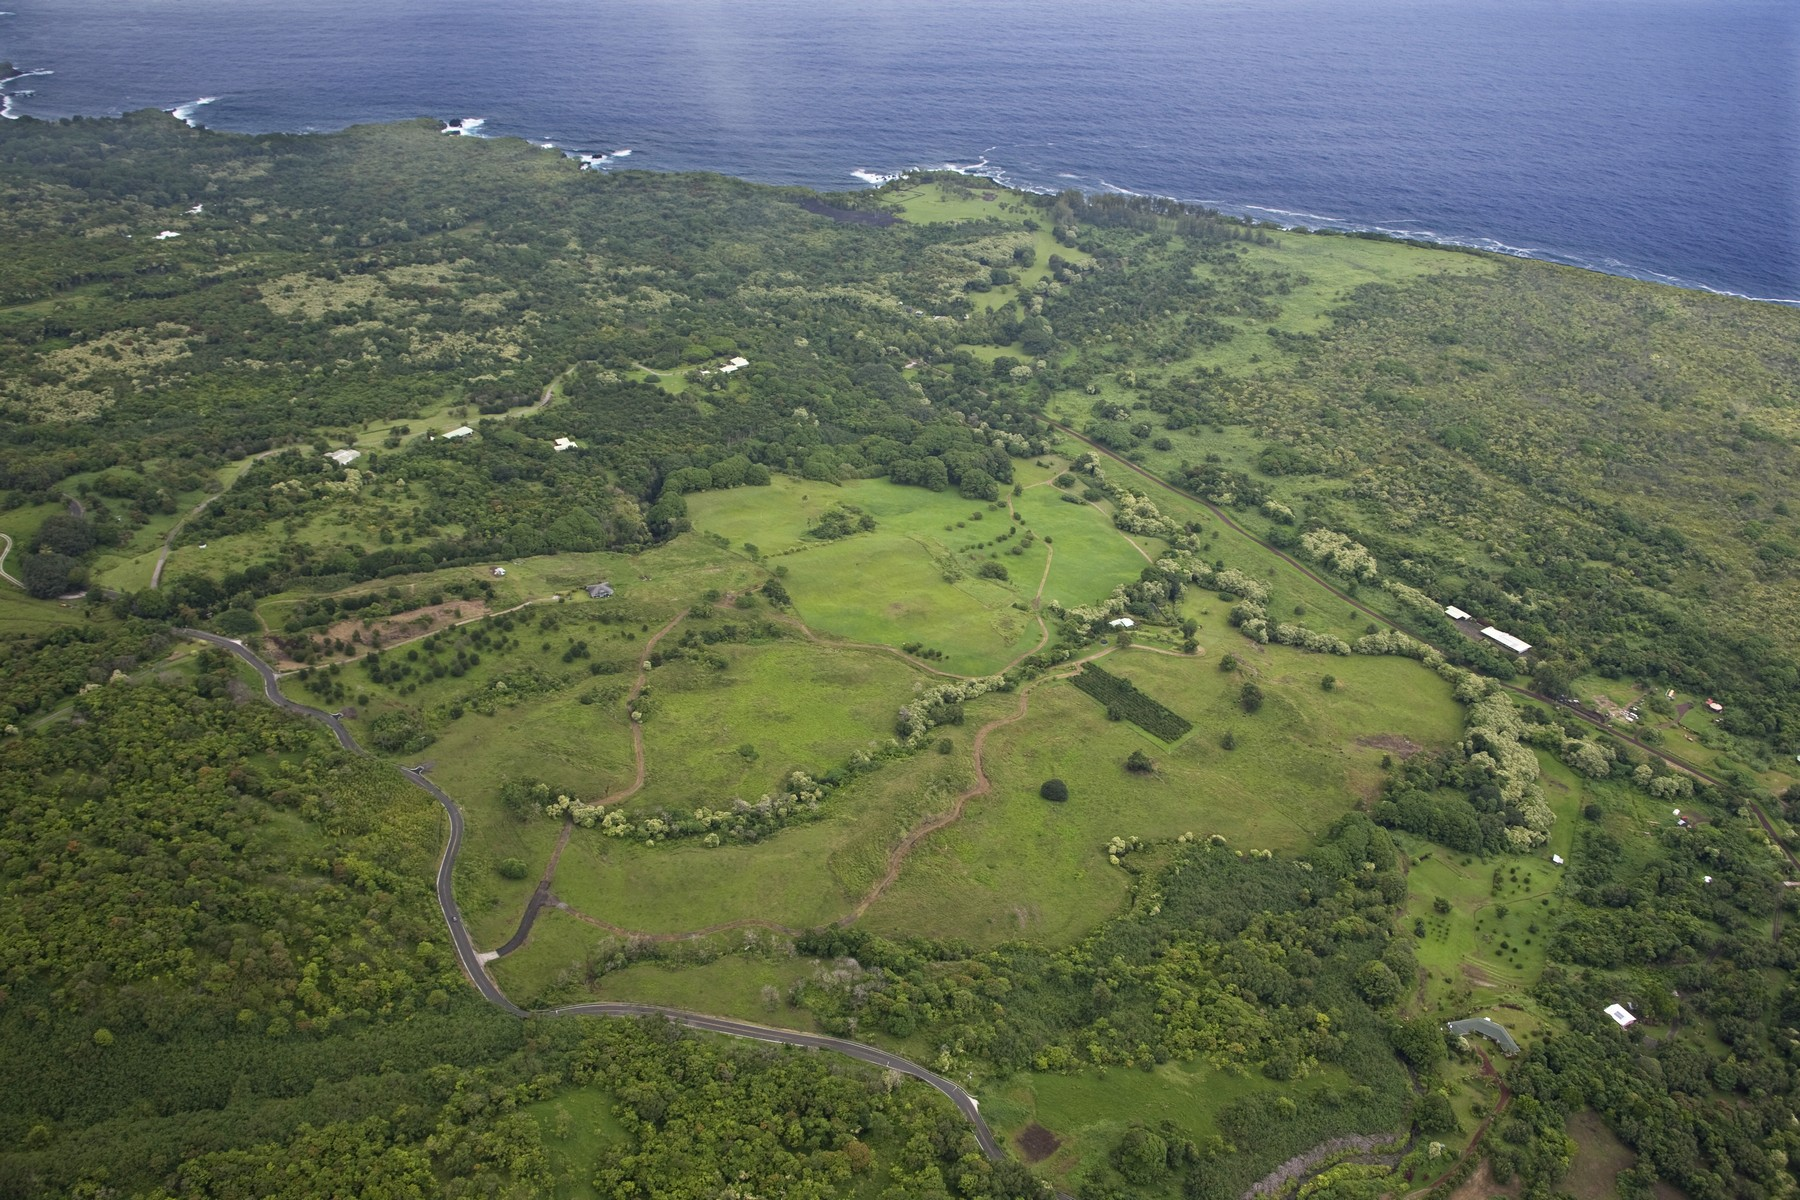 Земля для того Продажа на 125 Acres-7 Lot Subdivision-Tropical East Maui, Hawaii 0 Hana Highway Hana, Гавайи, 96713 Соединенные Штаты